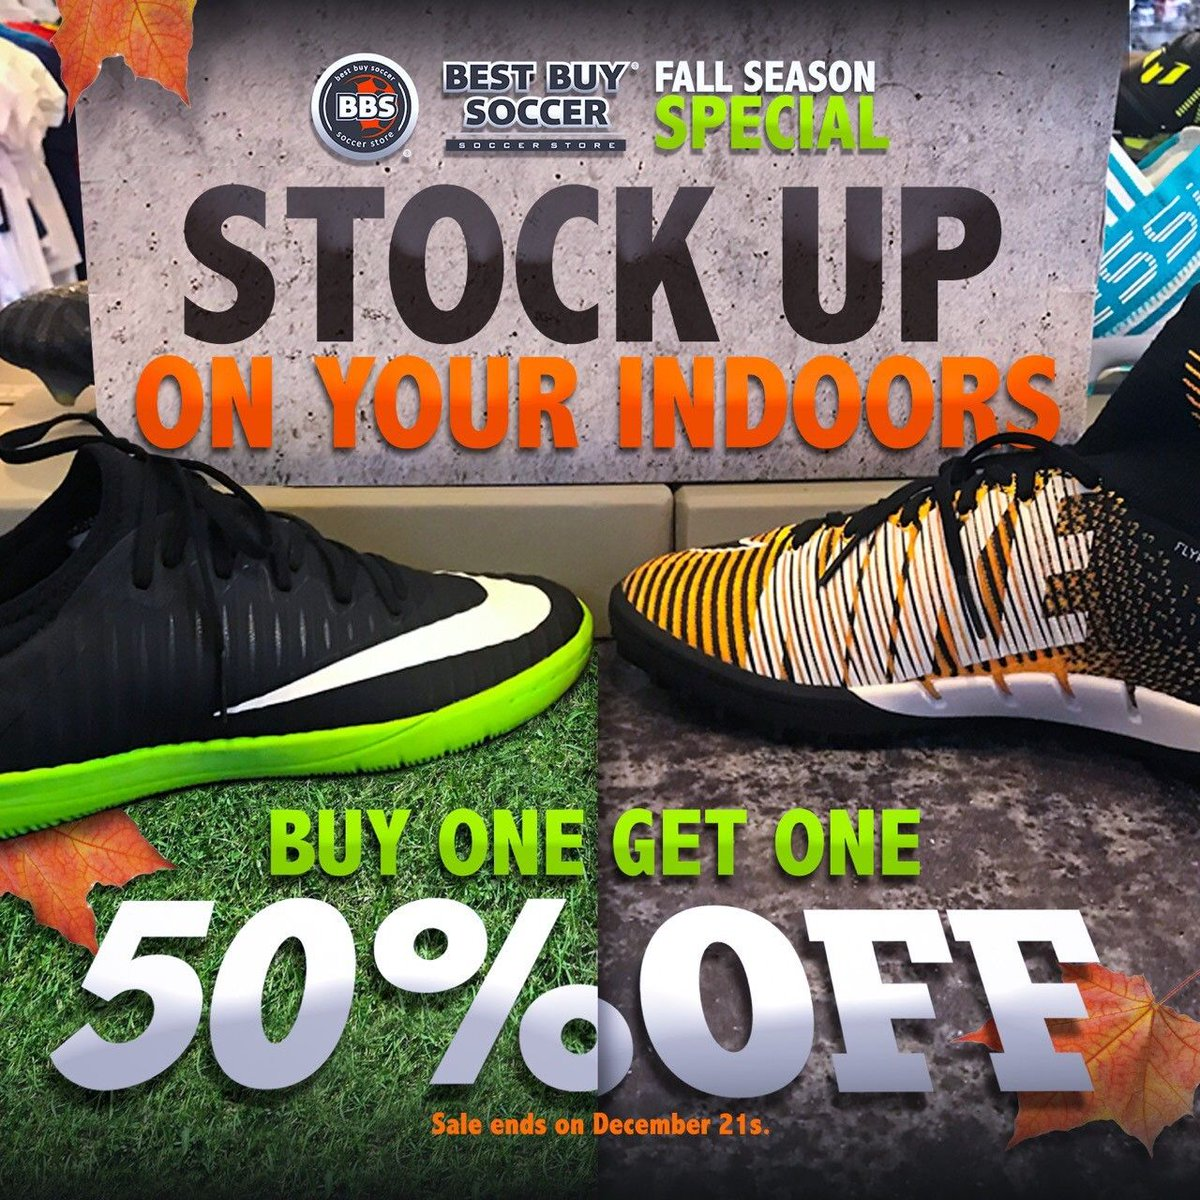 We are having an IN-STORE Promotion. Buy any indoor shoe and get the Second one 50 % Off. Only @ our Pineville Location. https://t.co/eNXN5cgmMG